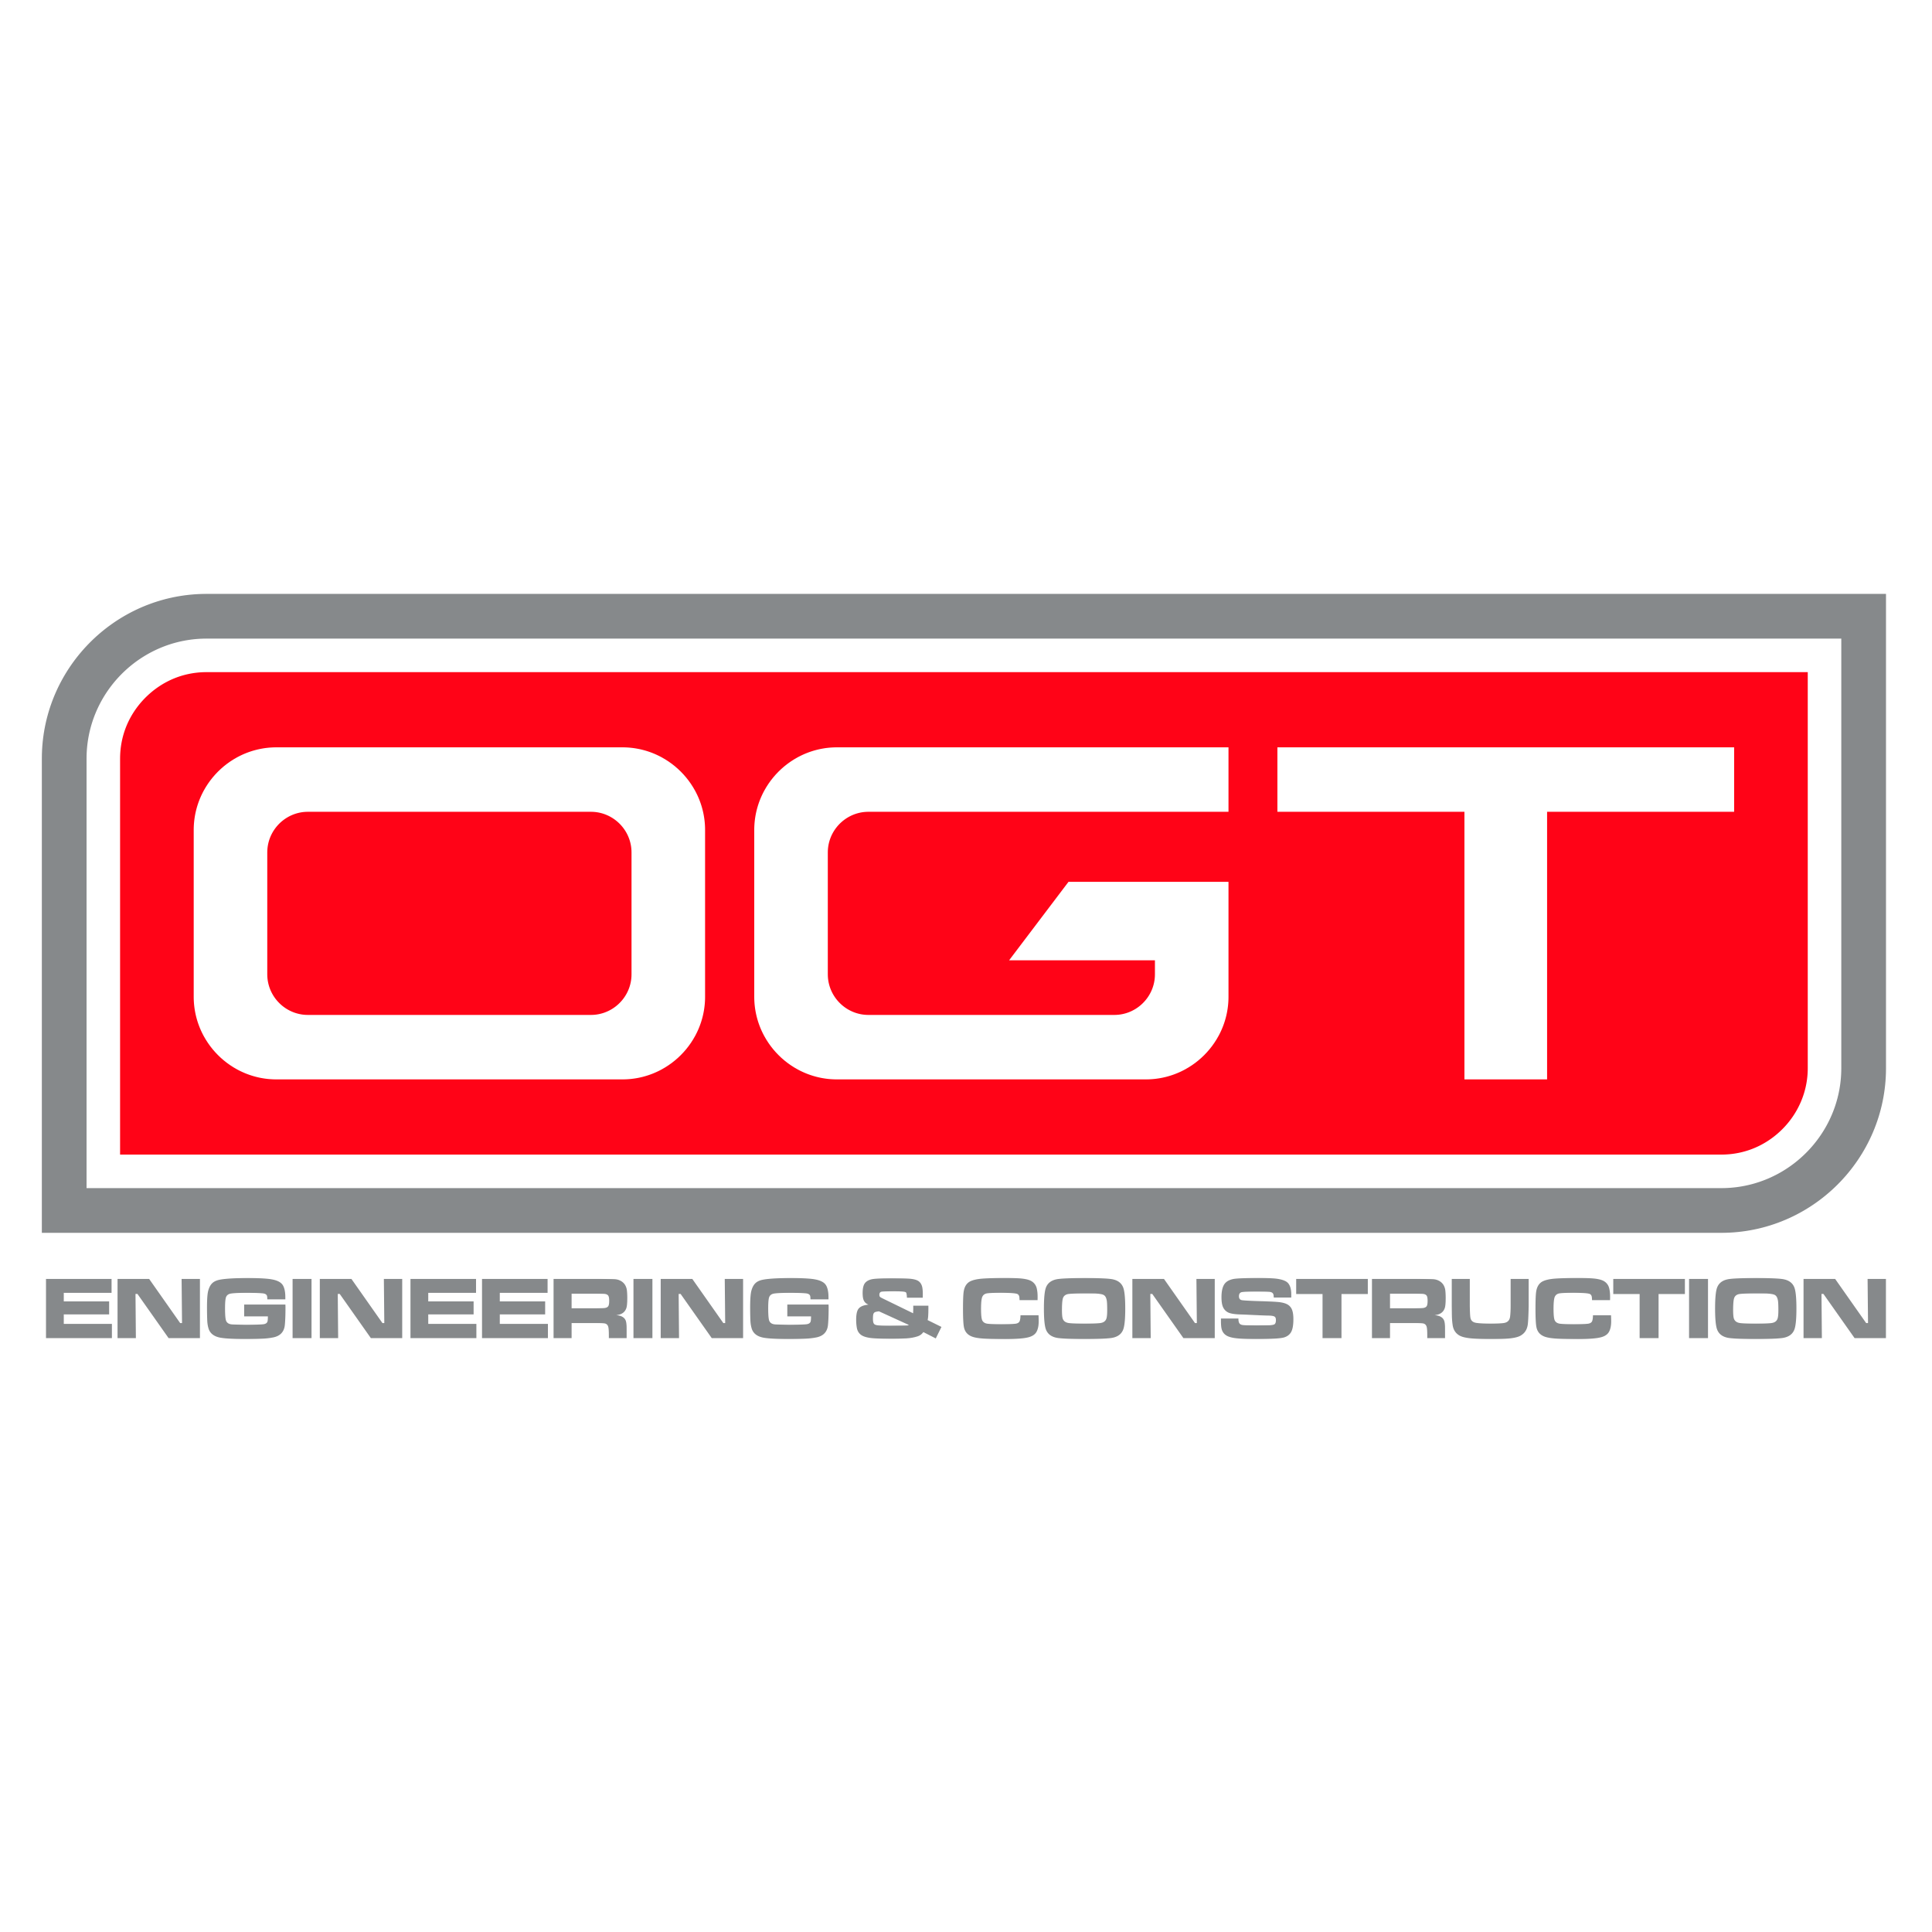 Logo design for an oil and gas engineering and construction company